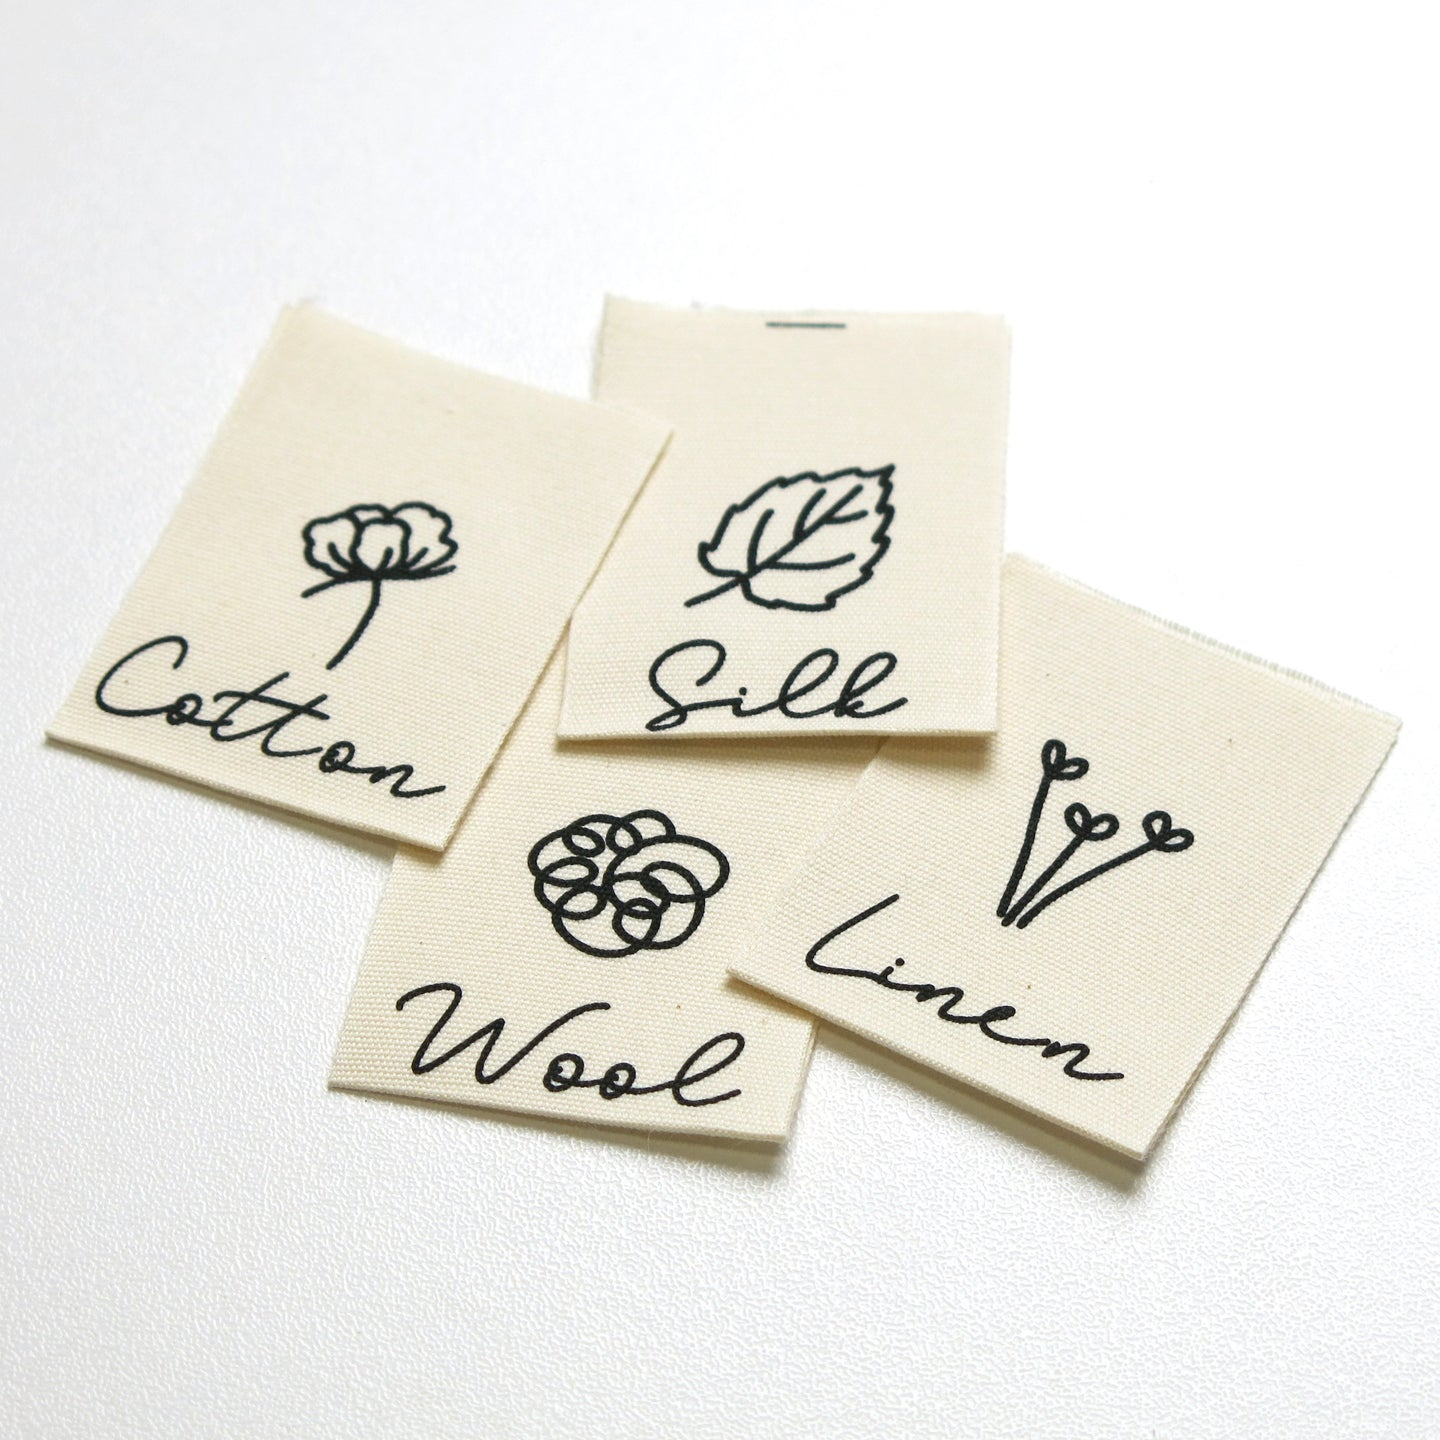 KATM - Natural fibres collection - pack of 8 cotton woven labels